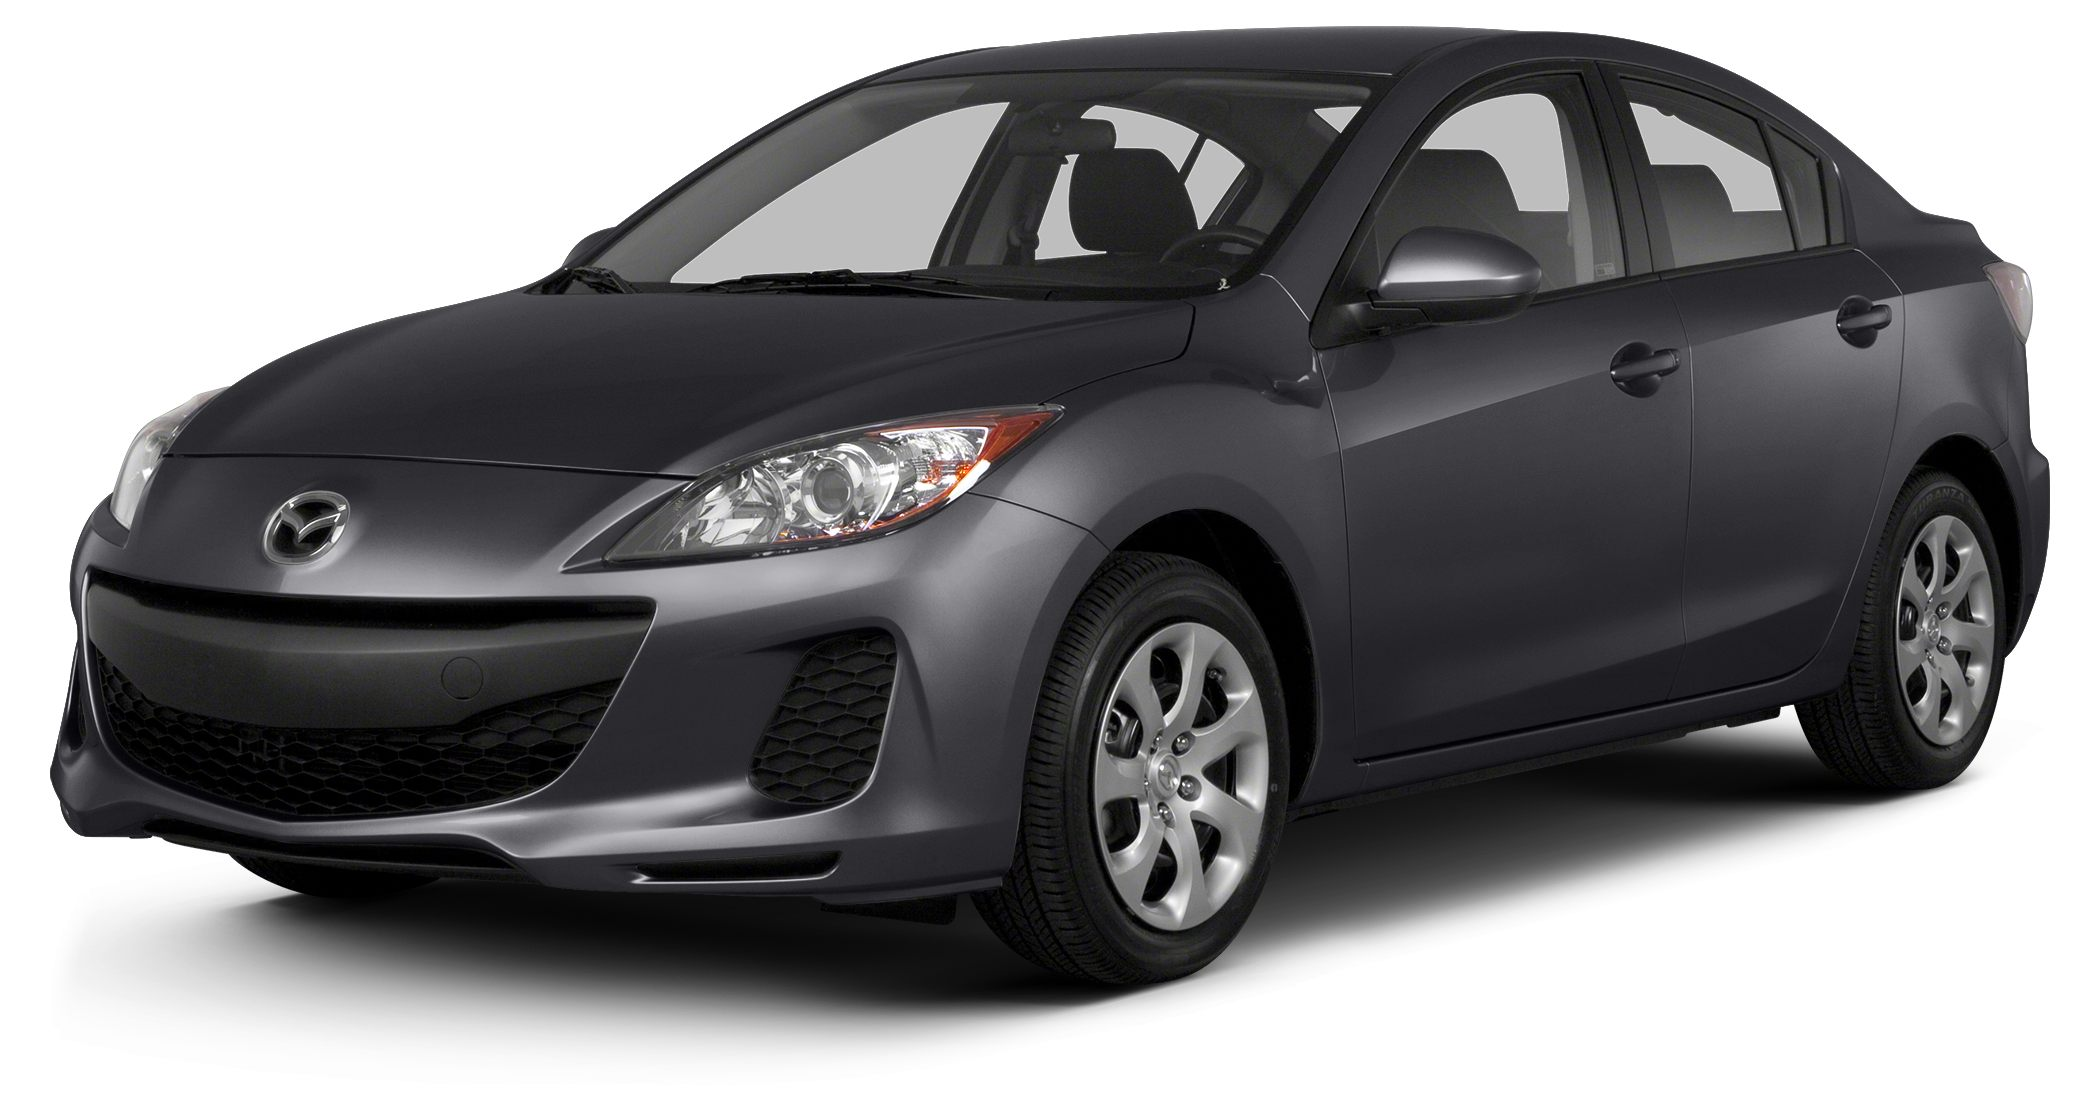 2013 Mazda MAZDA3 i Grand Touring Treat yourself to a test drive in the 2013 Mazda Mazda3 Very cl